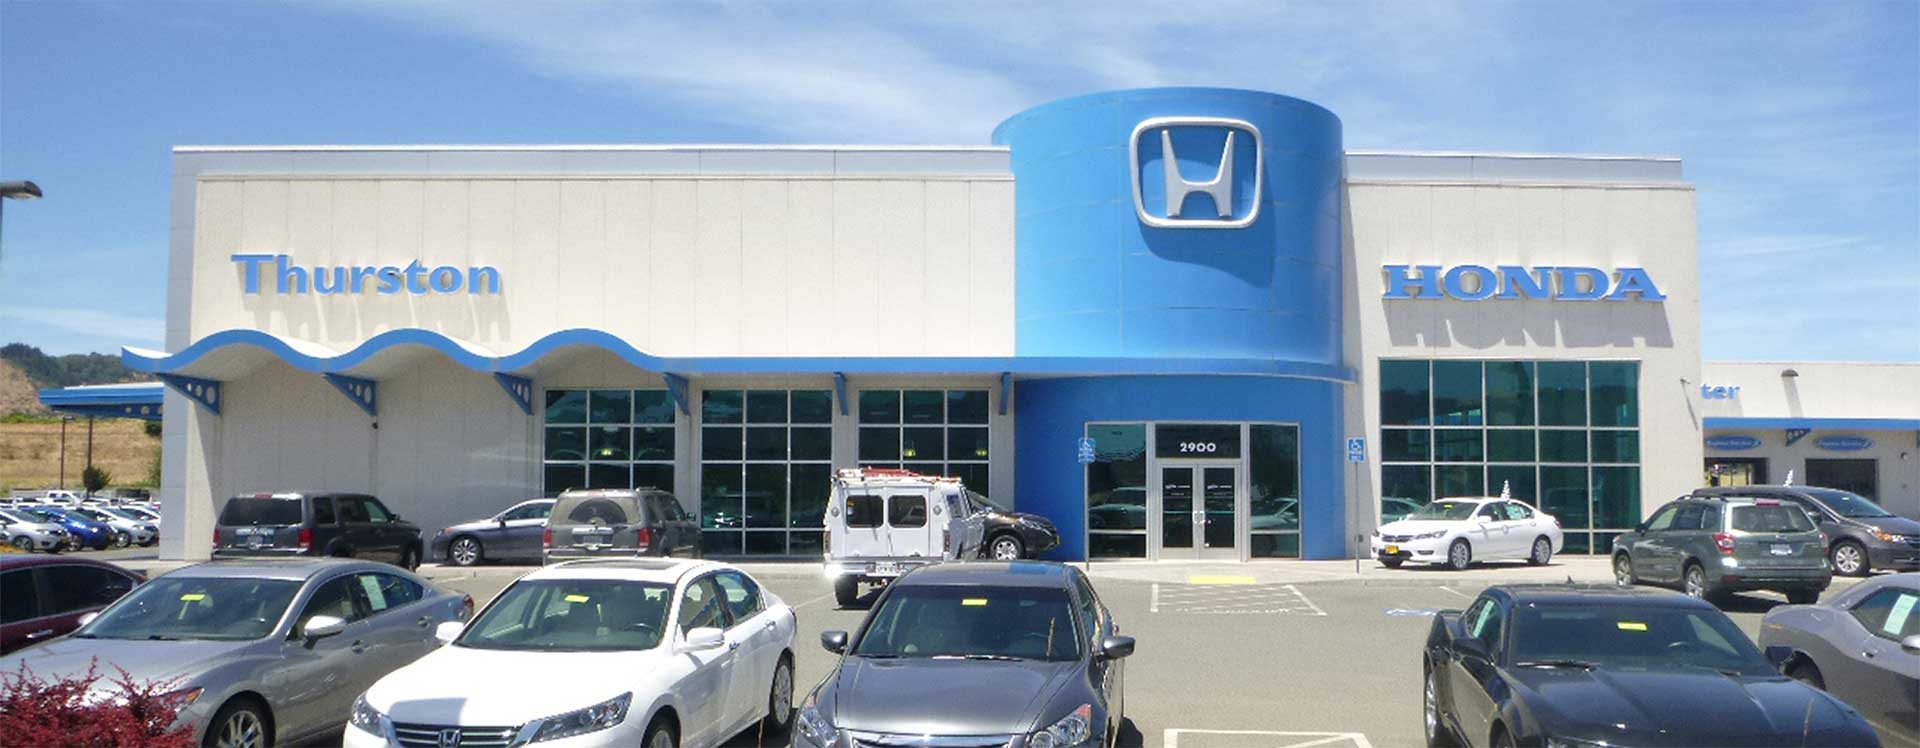 Thurston Honda New and Used Cars Parts and Service